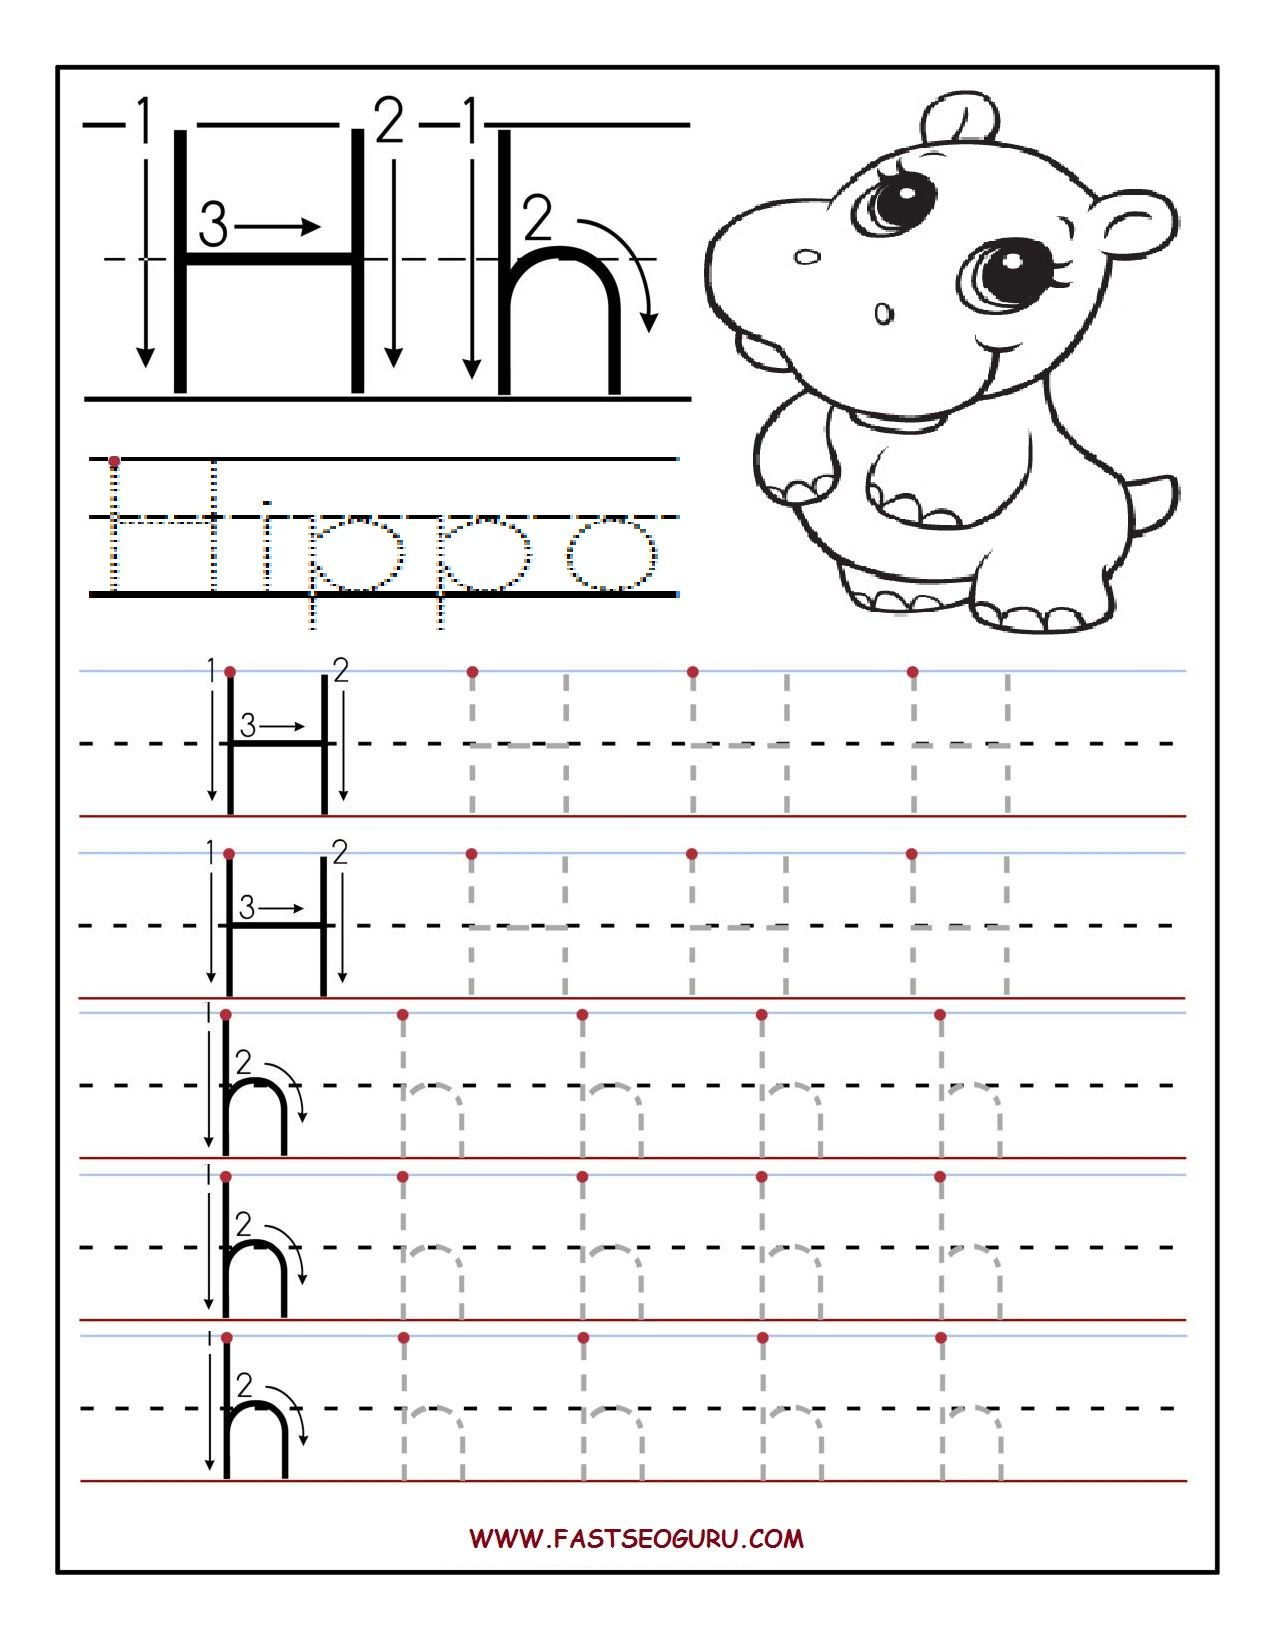 Printable Letter H Tracing Worksheets For Preschool throughout Letter H Tracing Page